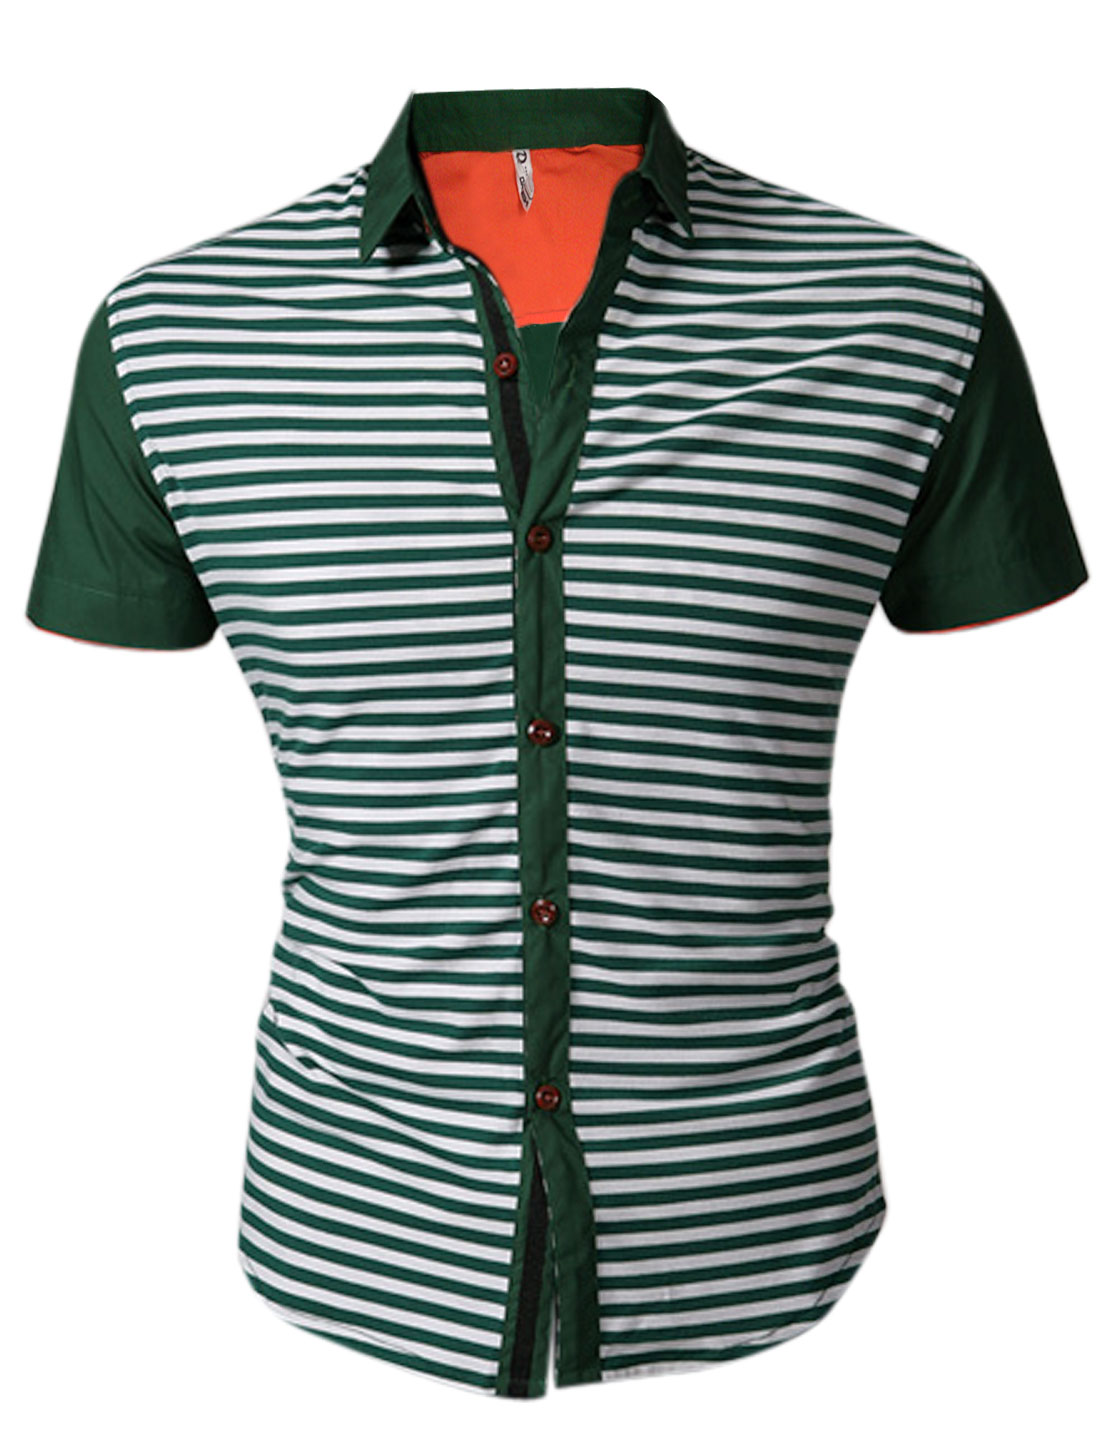 Man Stripes Panel Design Single Breasted Front Green White Shirt M